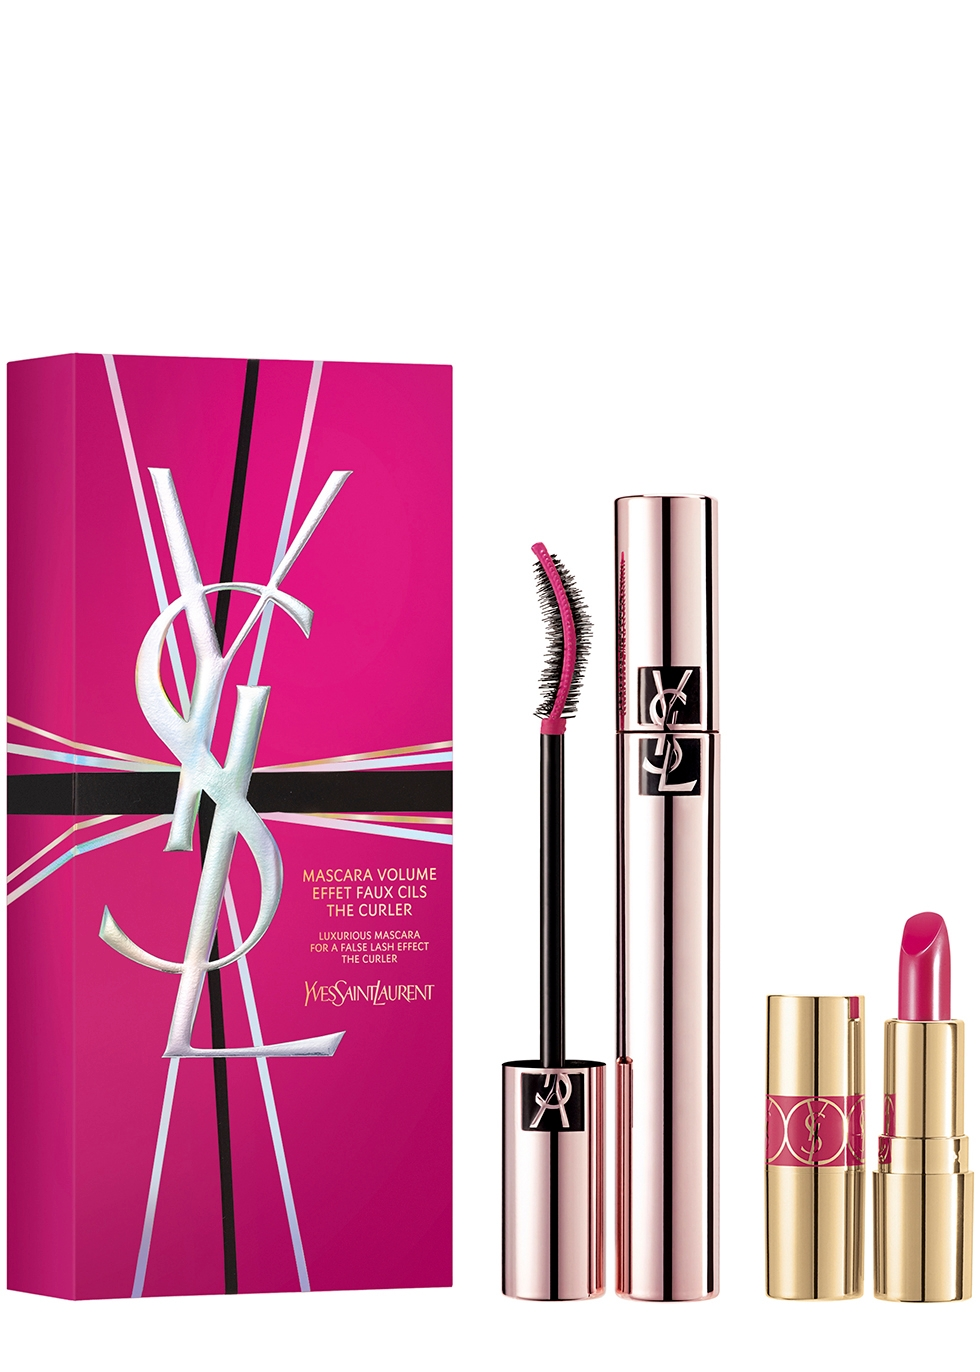 The Curler Finishing Touch Set by Yves Saint Laurent